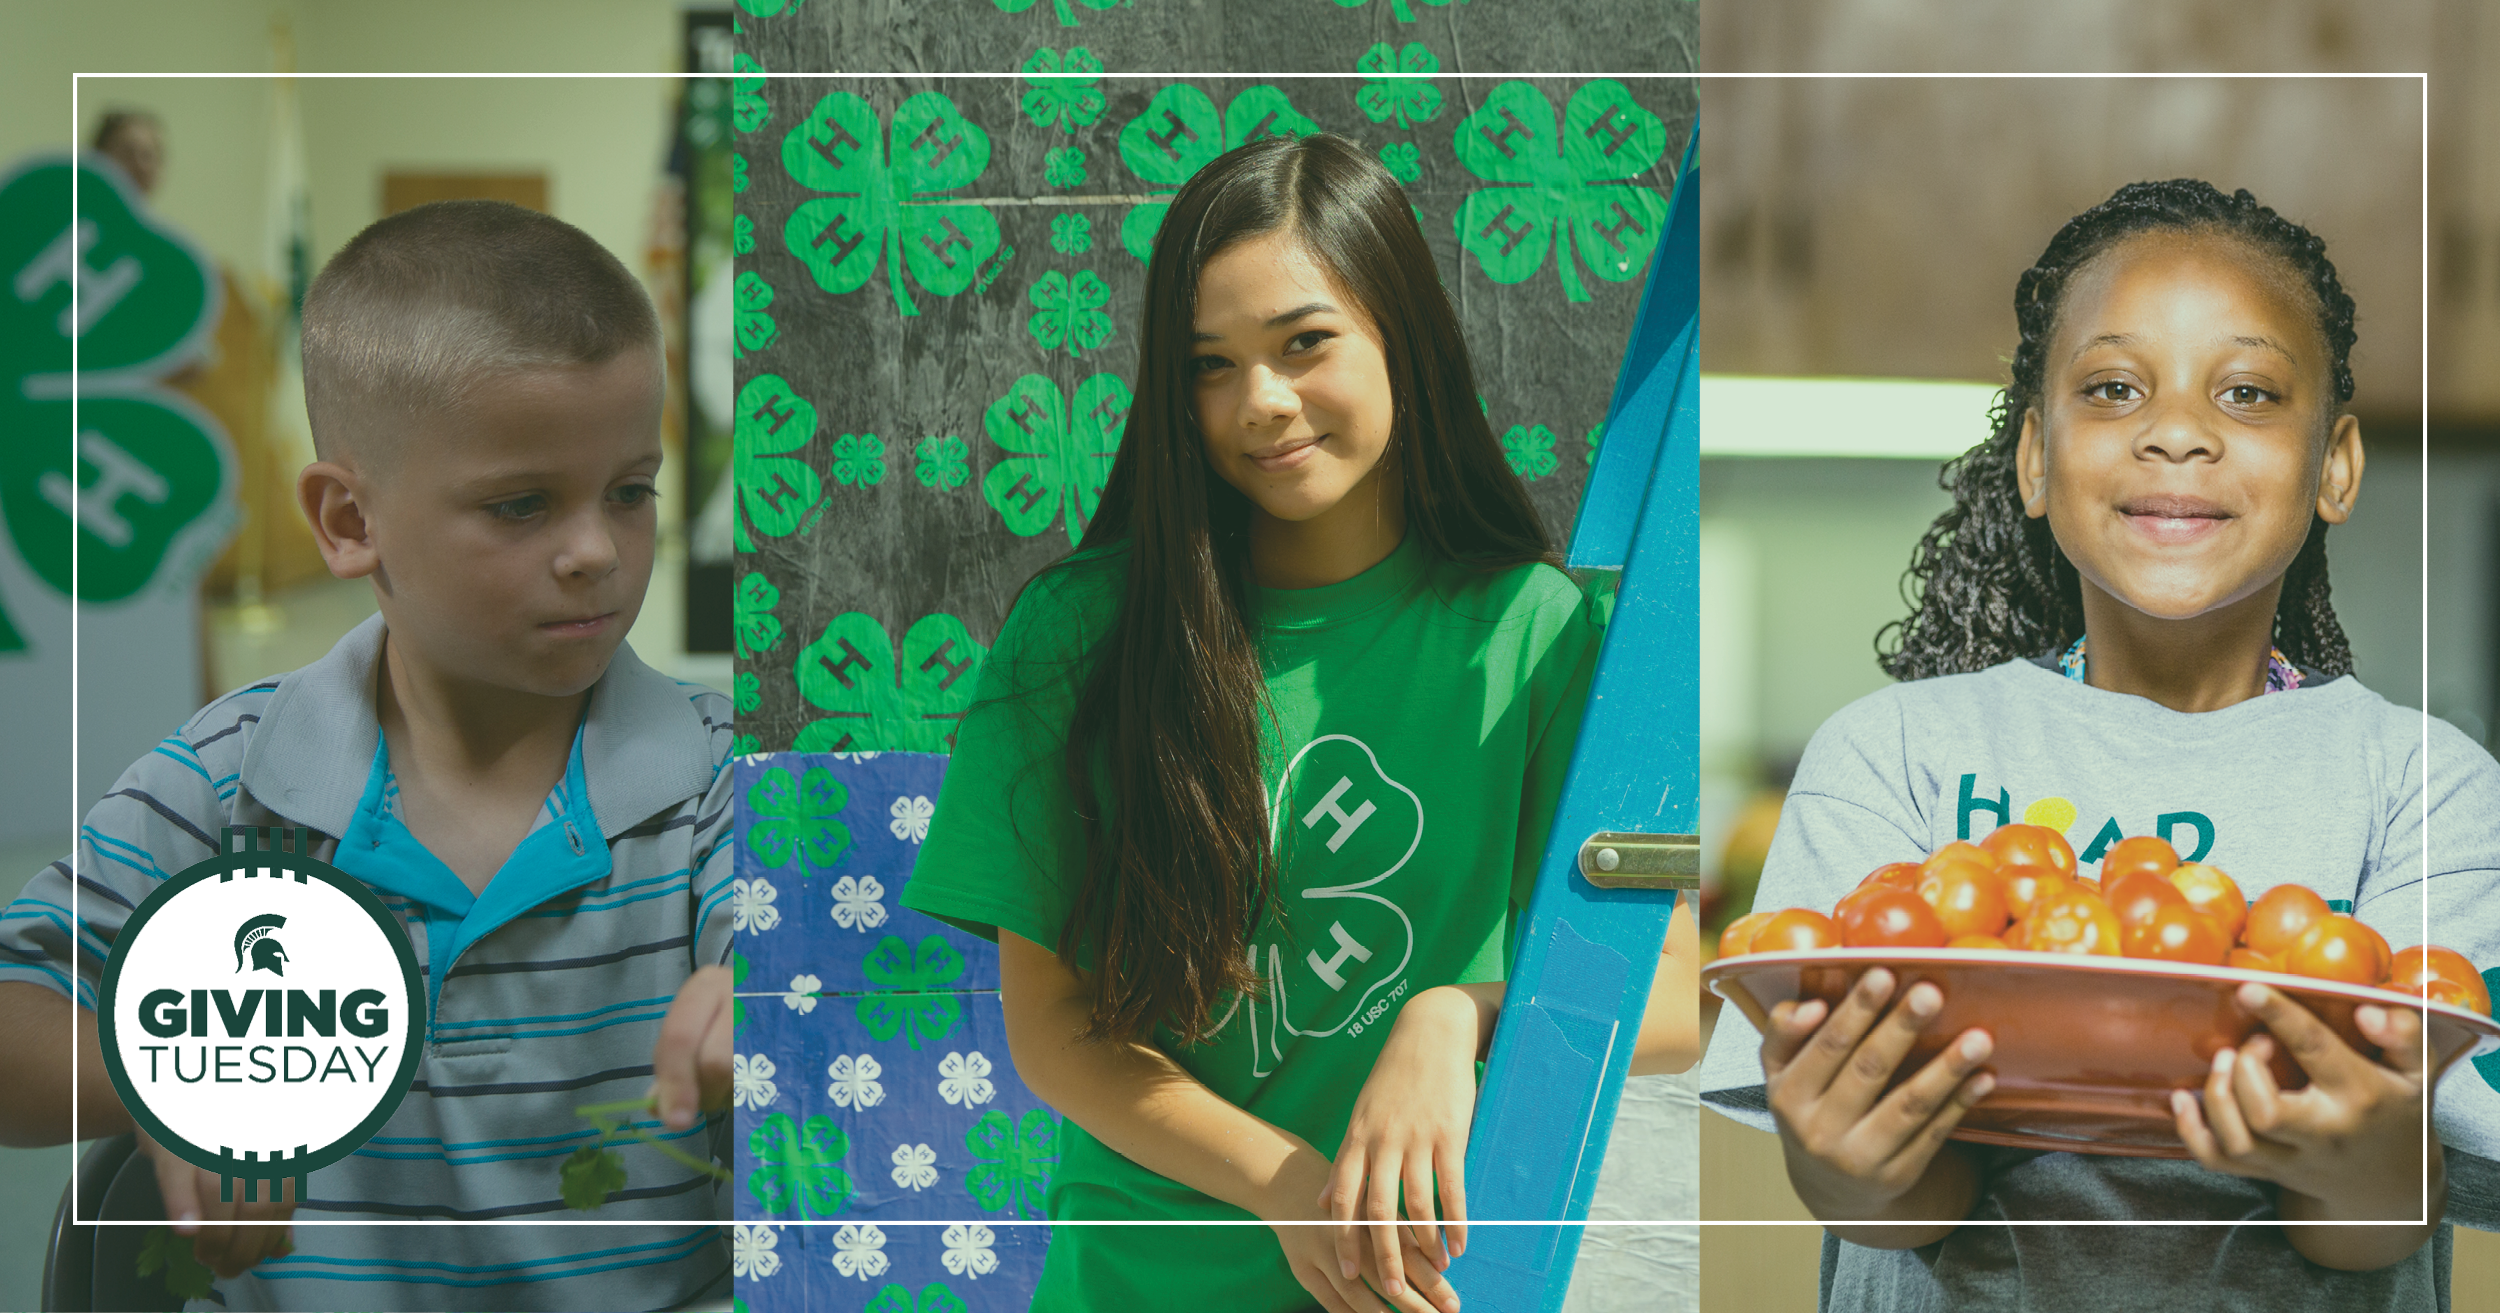 Giving Tuesday image with three 4-H youth